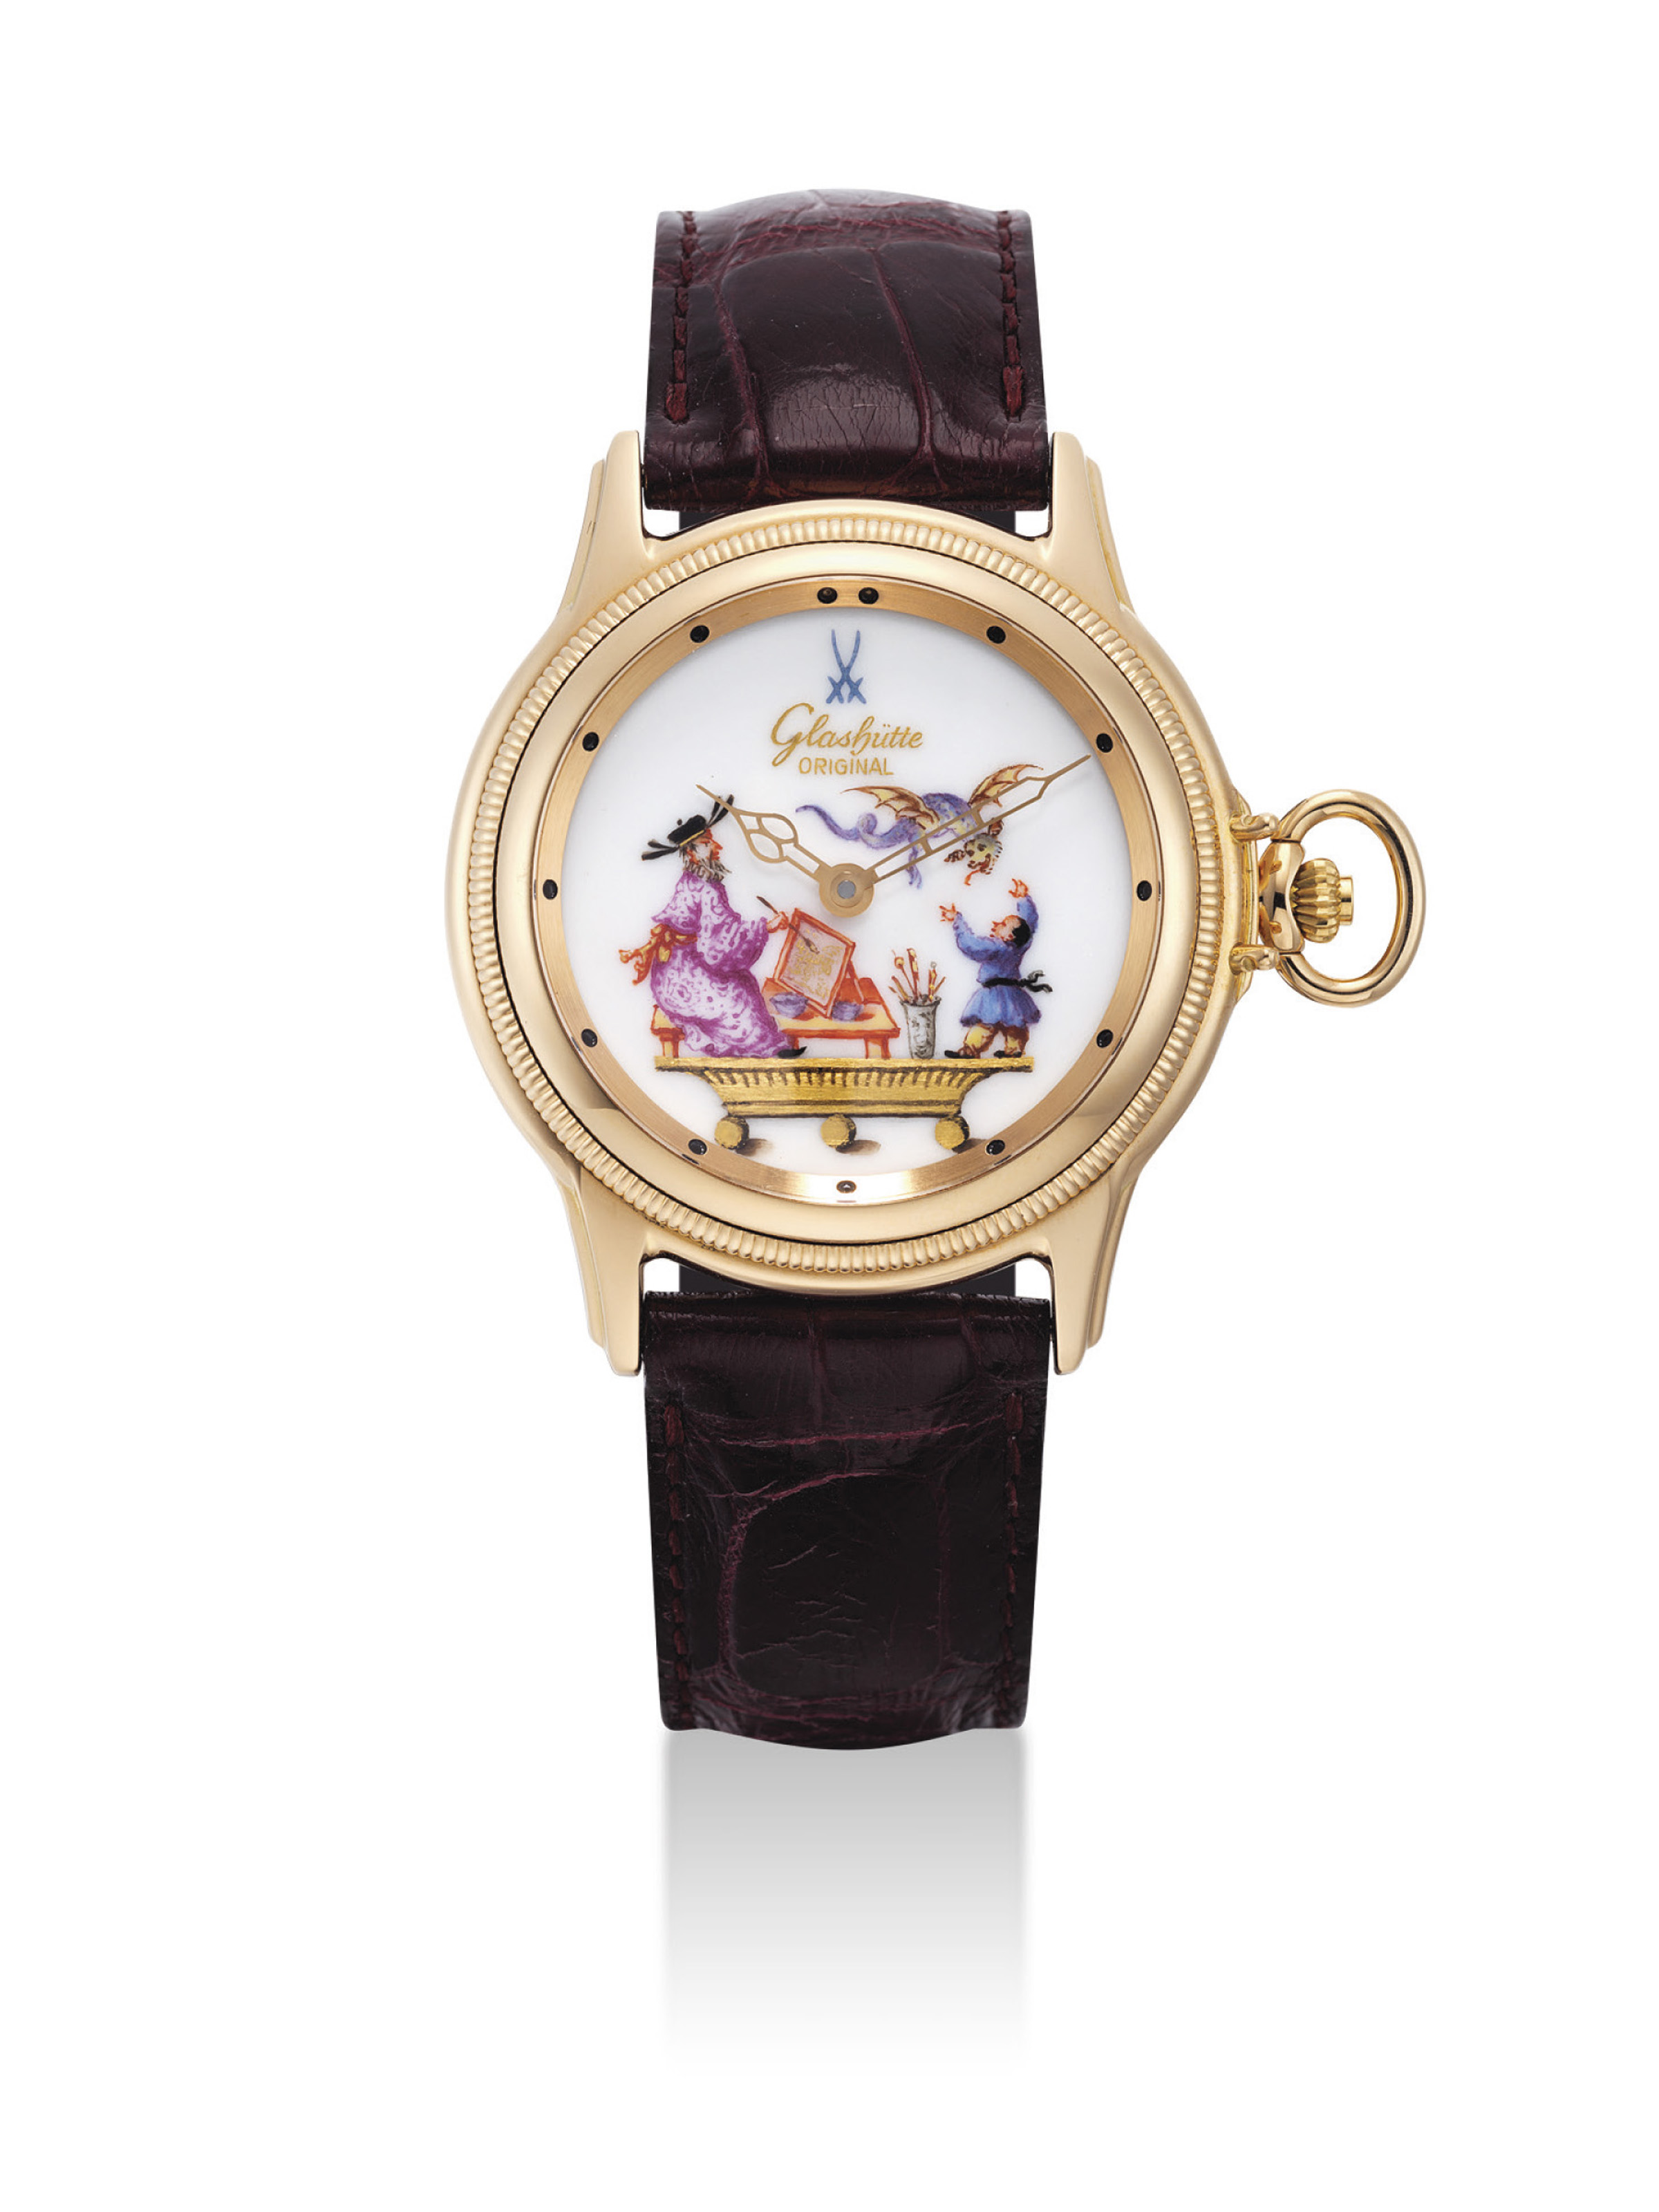 GLASHÜTTE ORIGINAL. A VERY FINE AND RARE 18K GOLD CONVERTIBLE LIMITED EDITION WATCH WITH MEISSEN PORCELAIN DIAL AND 18K GOLD CHAIN TO BE WORN AS WRIST OR POCKET WATCH